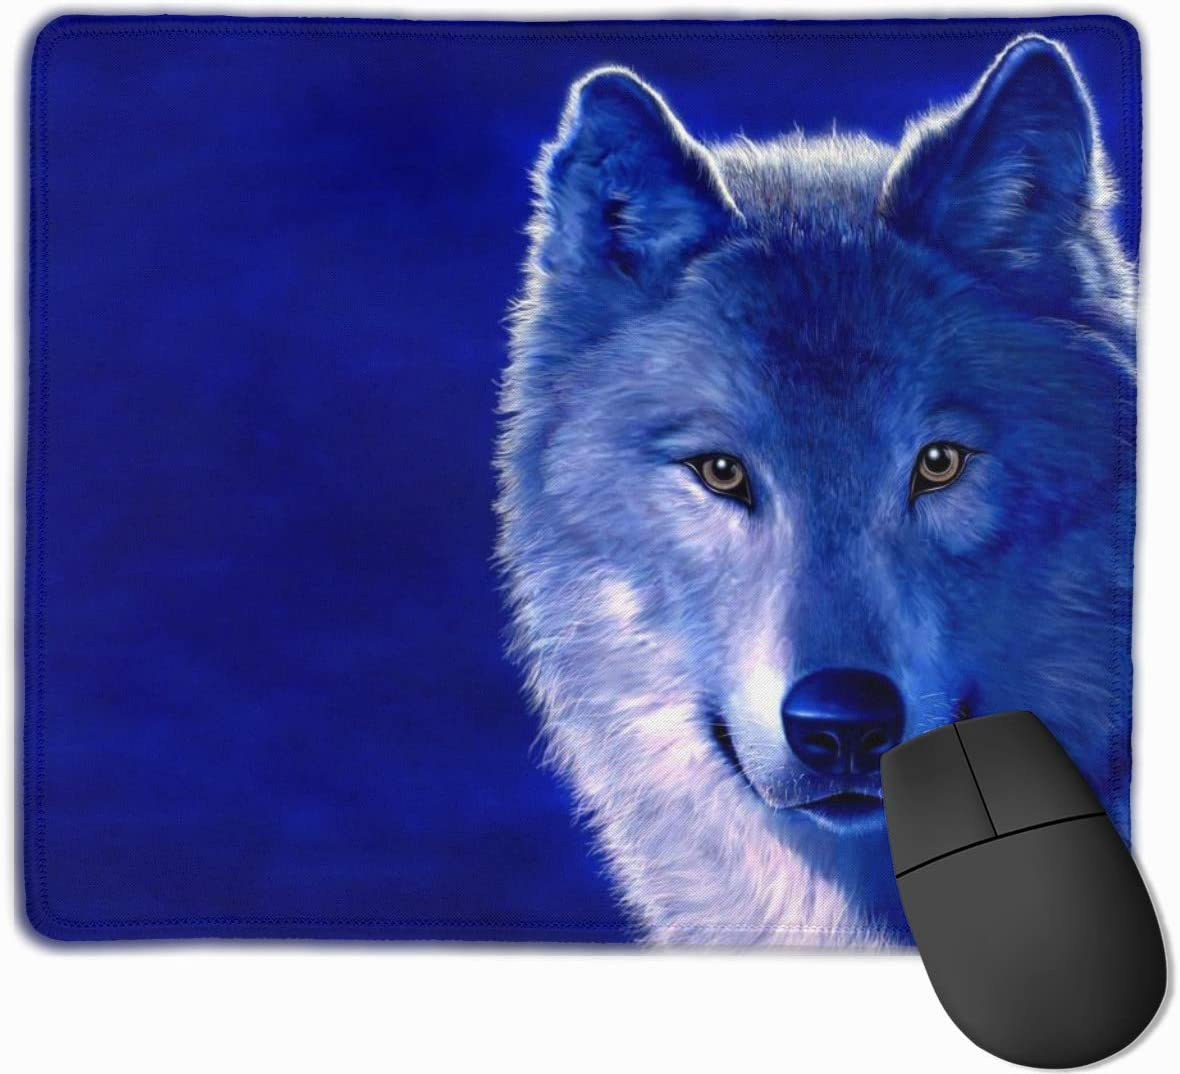 Mouse Pad Gmaing Computer Mouse Pad with Non-Slip Rubber Base for Computers MULOHYT Blue Animals Digital Art Wolves Mouse Pad with Stitched Edge Laptop Work PC